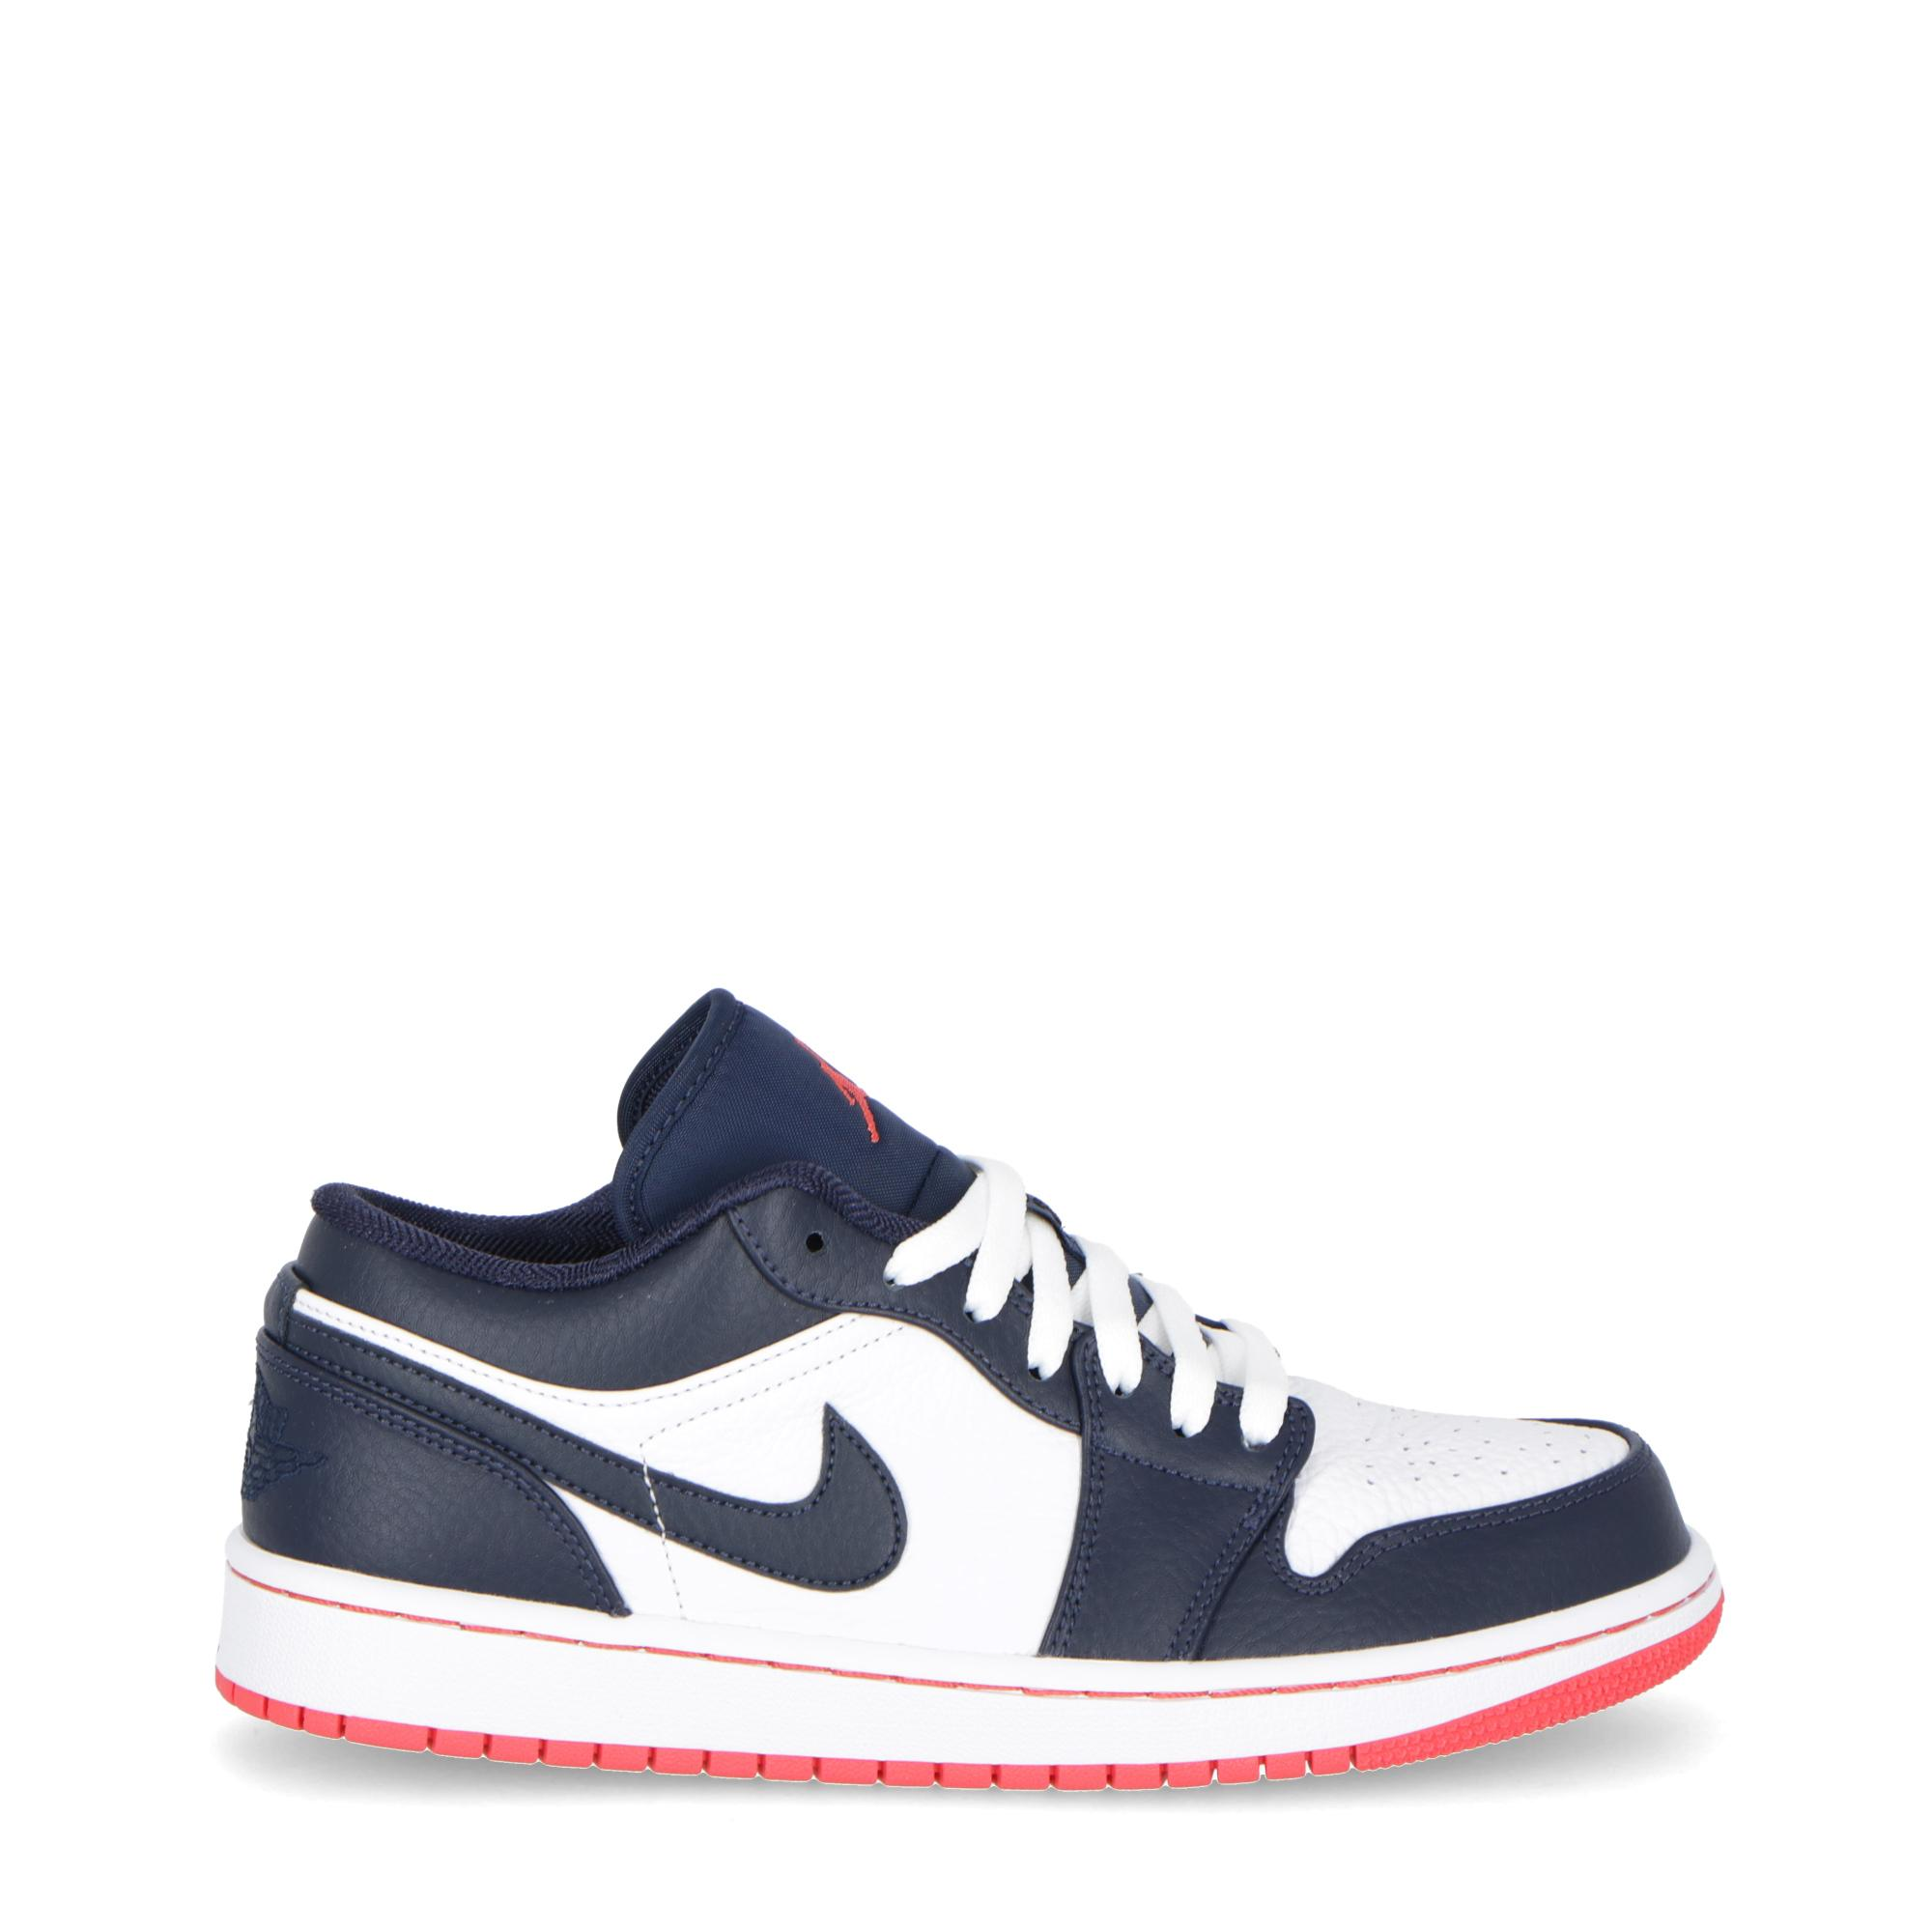 uk availability c1265 db8f5 Jordan Air Jordan 1 Low Obsidian ember